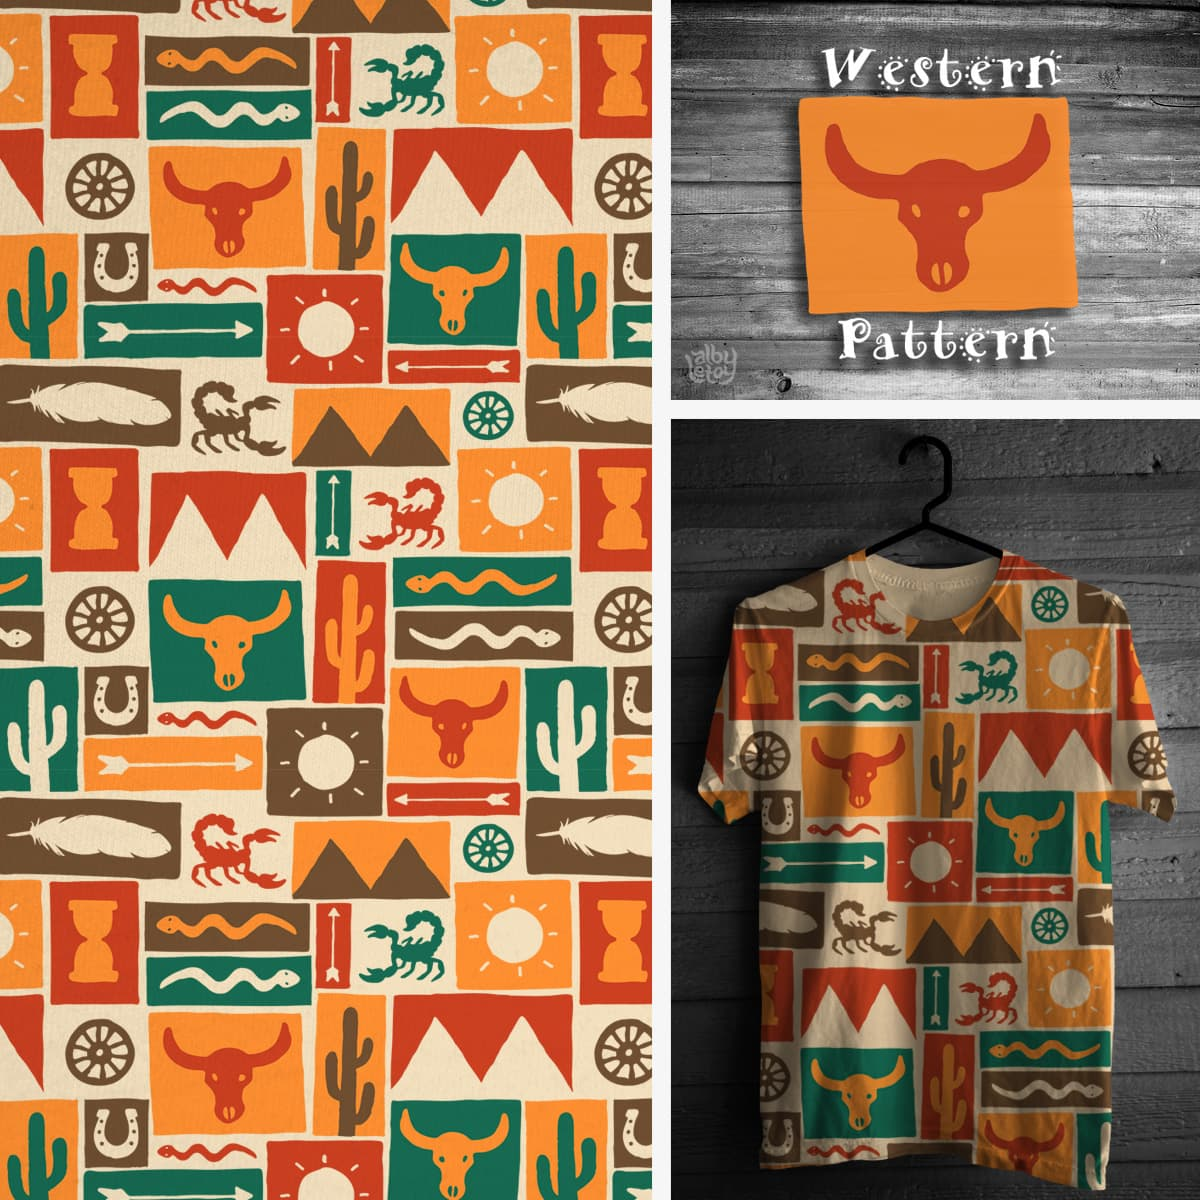 Western Pattern by albyletoy on Threadless